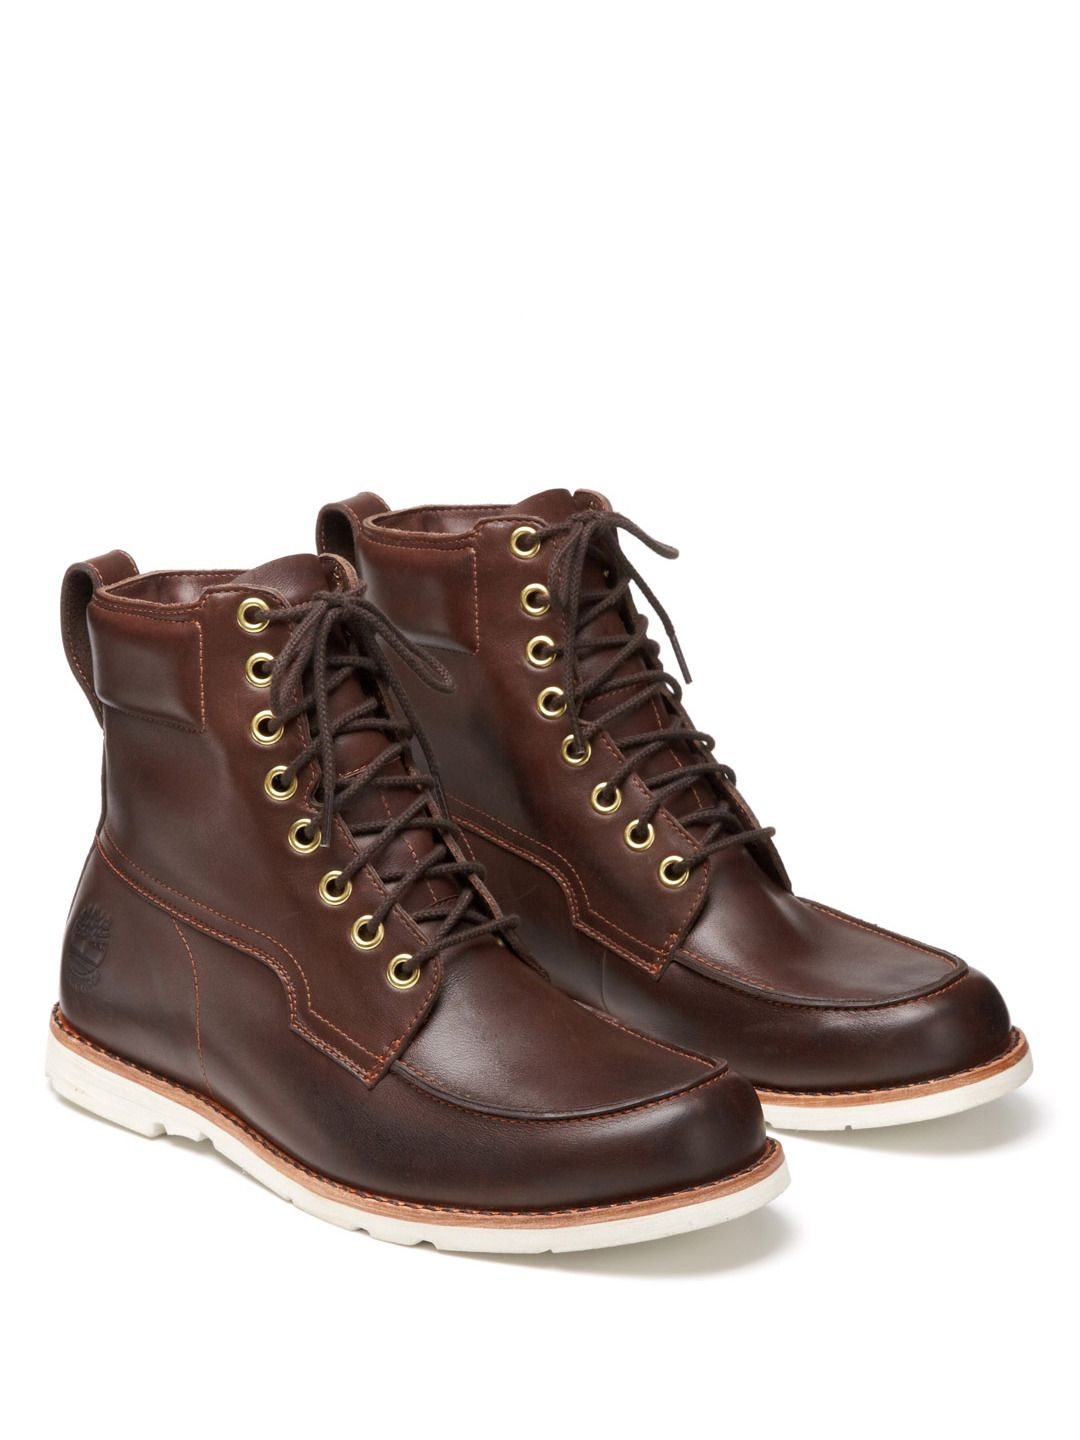 f767f5549c84 Timberland Earthkeepers 2.0 Lace-Up Boots - Google Search